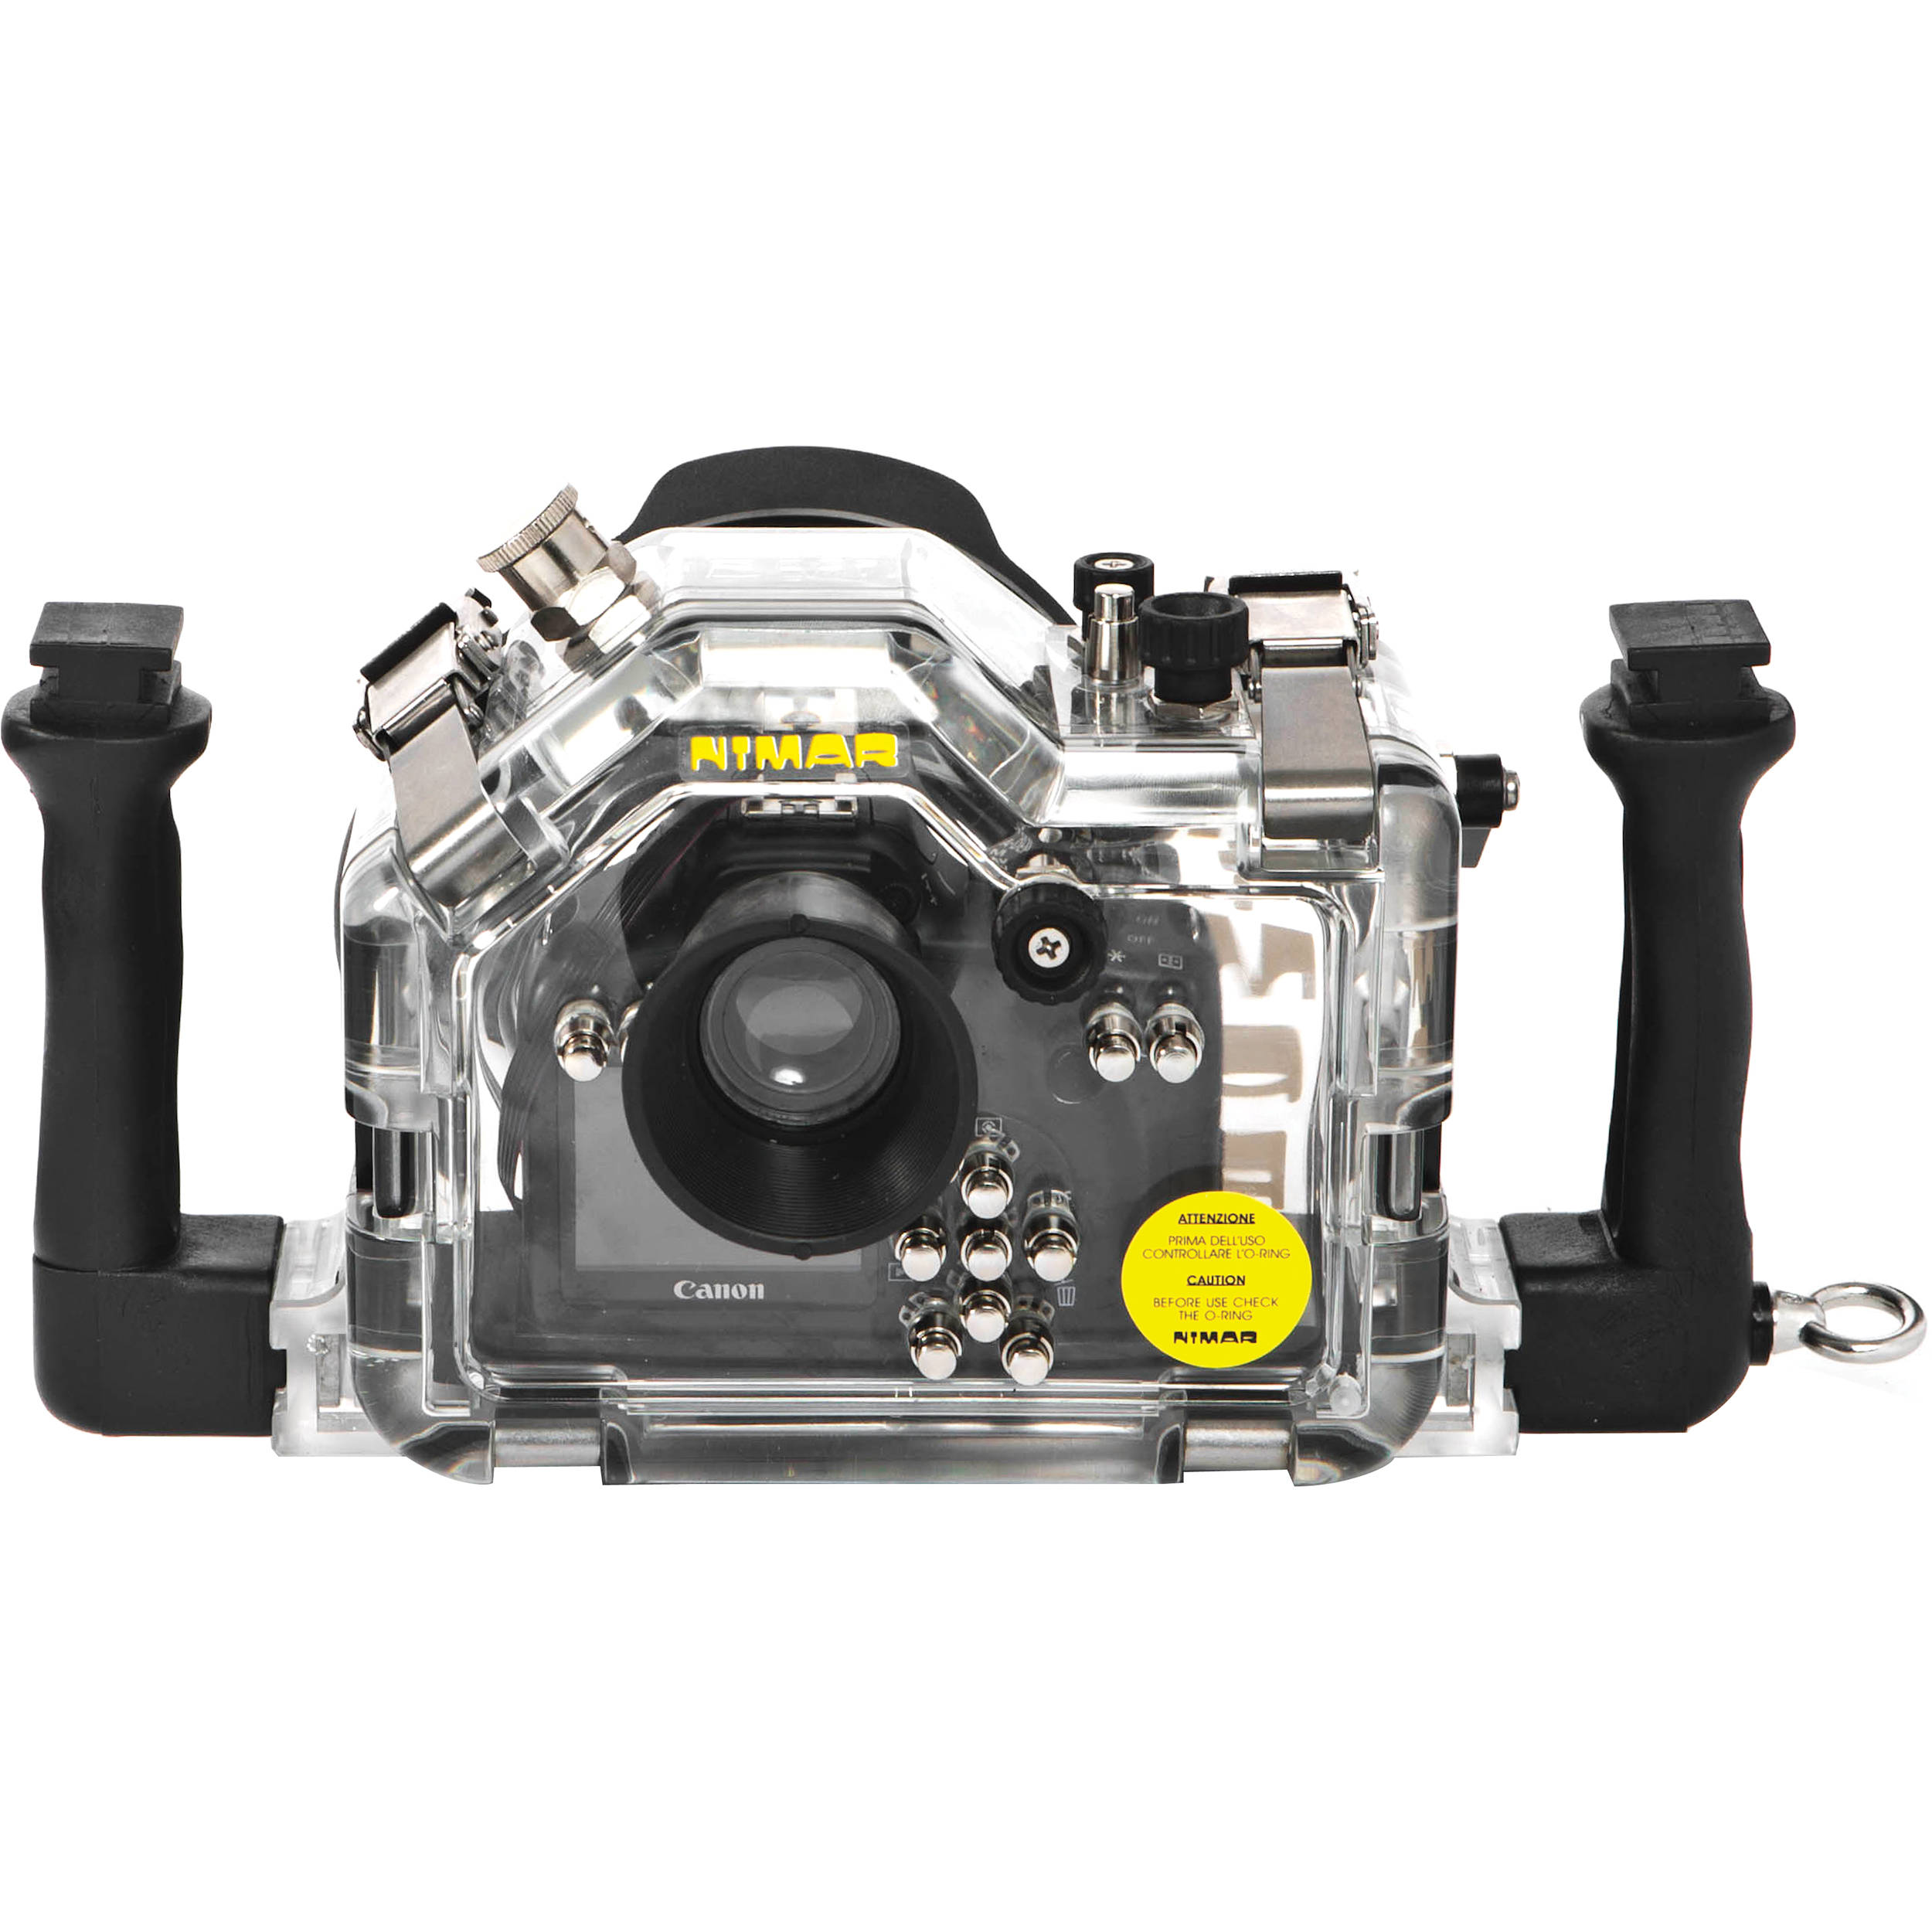 Nimar Underwater Housing for Canon EOS Rebel XS/1000D with Lens Port for  EF-S 18-55mm f/3 5-5 6 IS